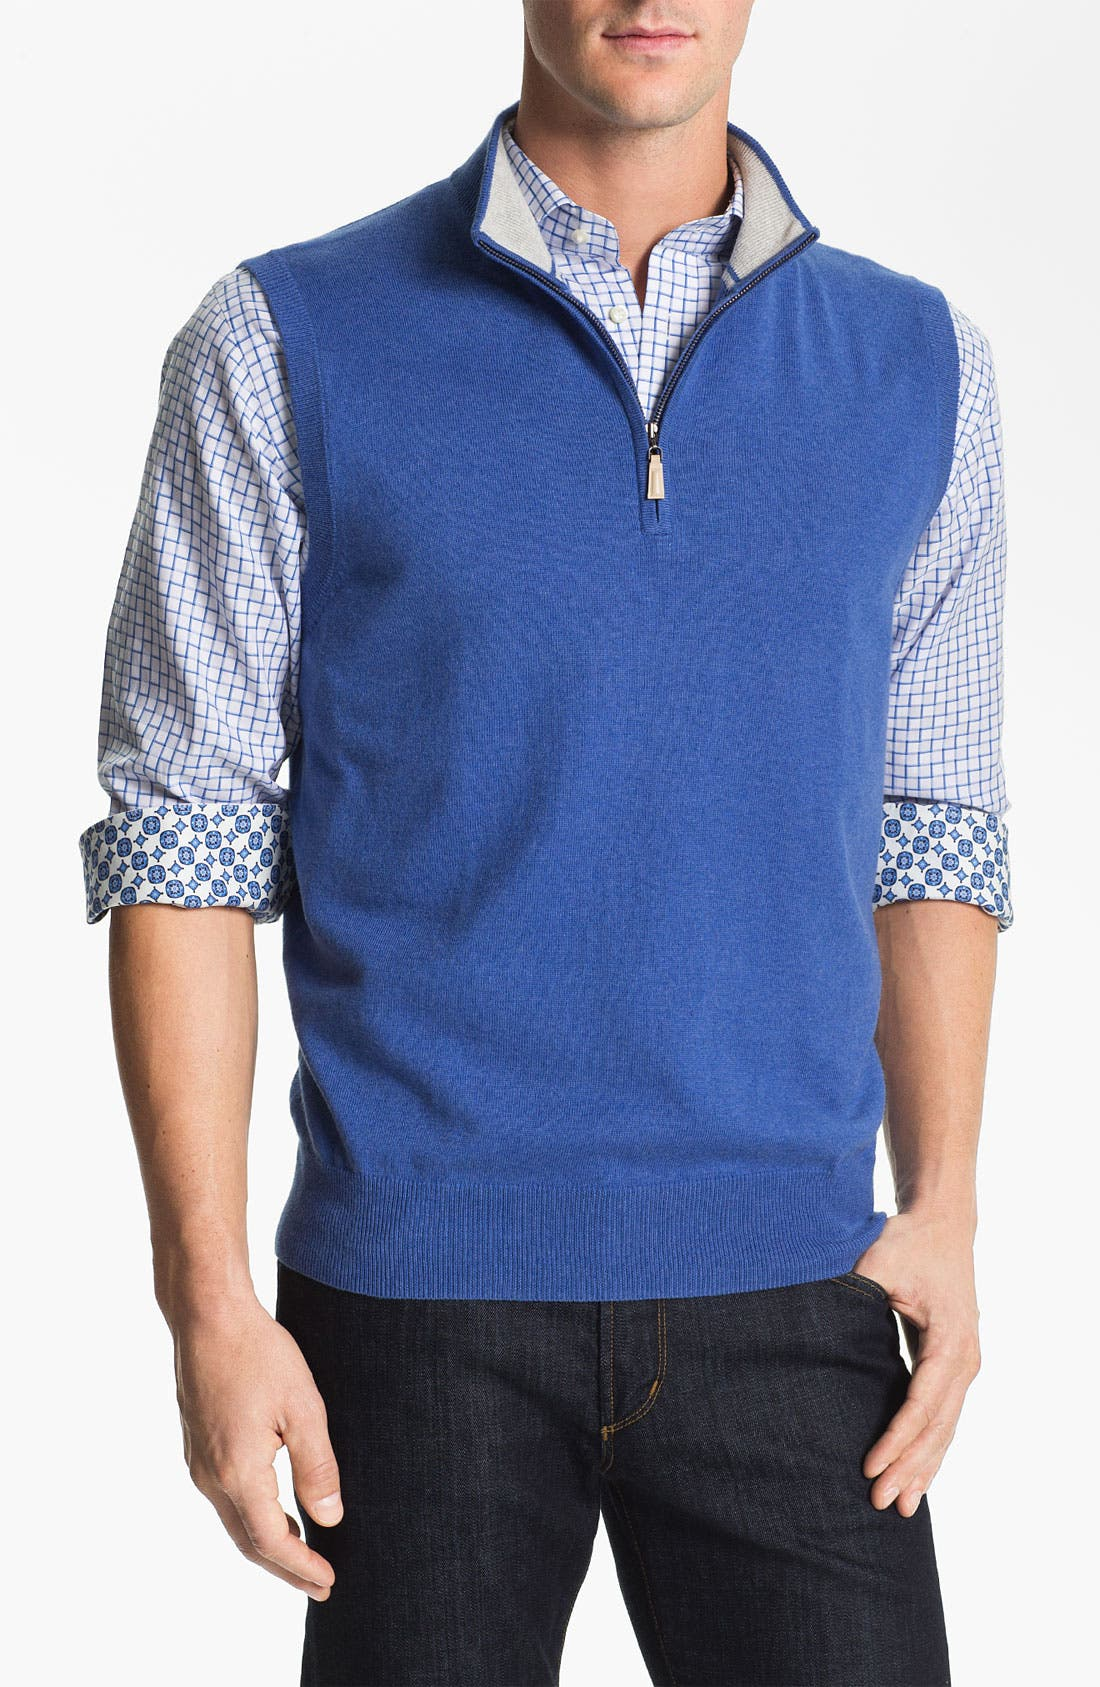 Alternate Image 1 Selected - Peter Millar Quarter Zip Cotton & Cashmere Sweater Vest